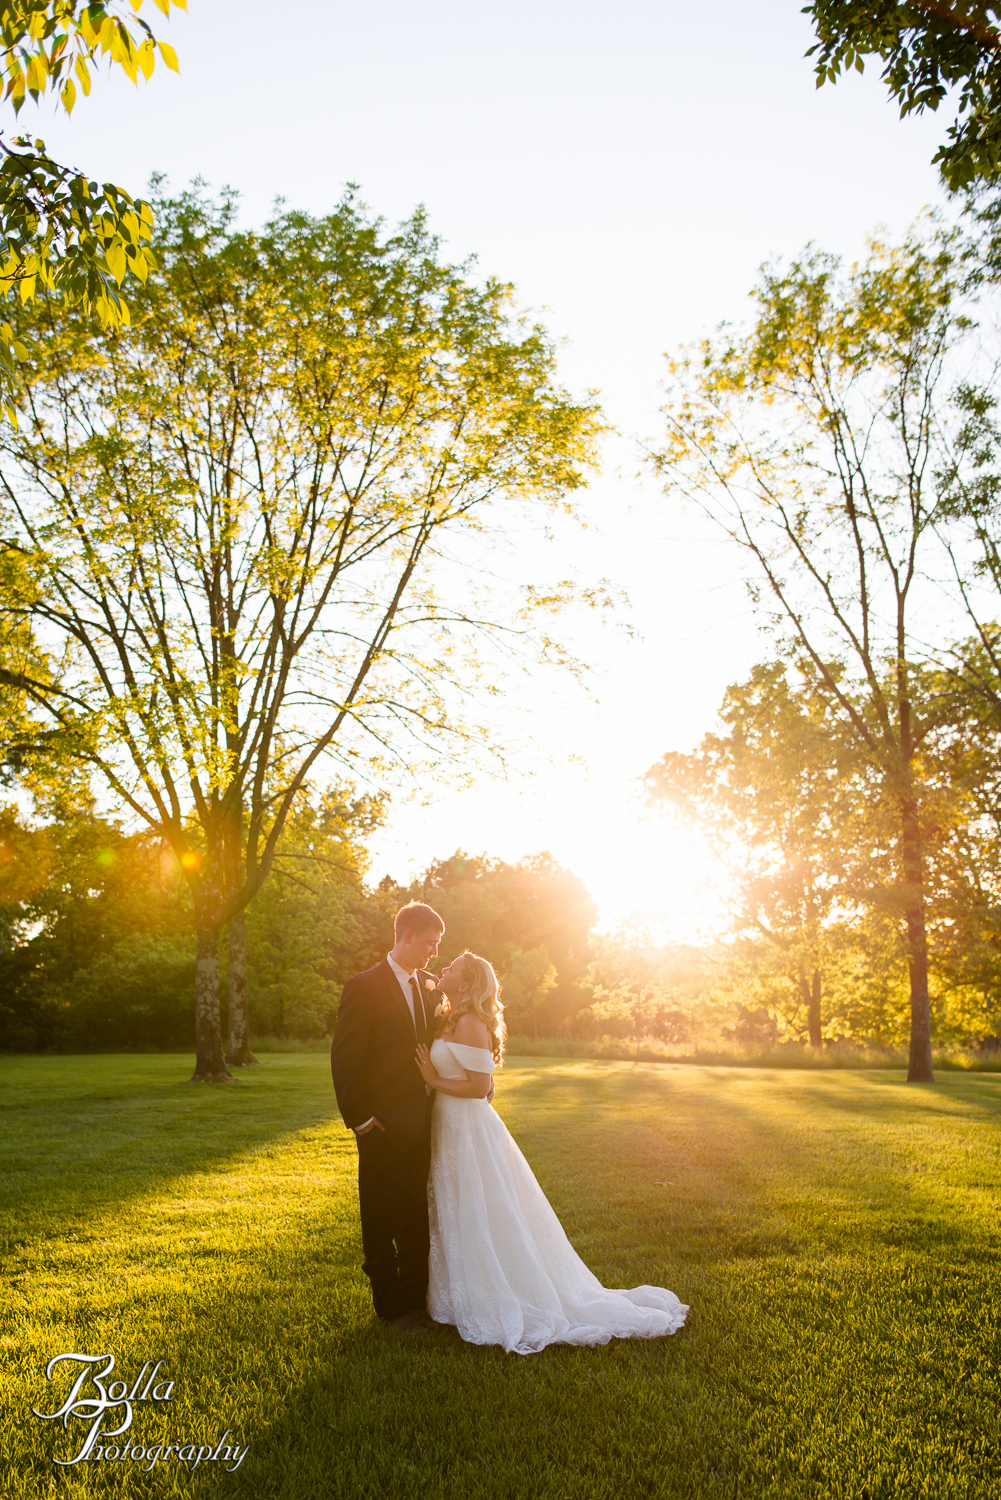 Bolla_Photography_St_Louis_wedding_photographer-0005.jpg